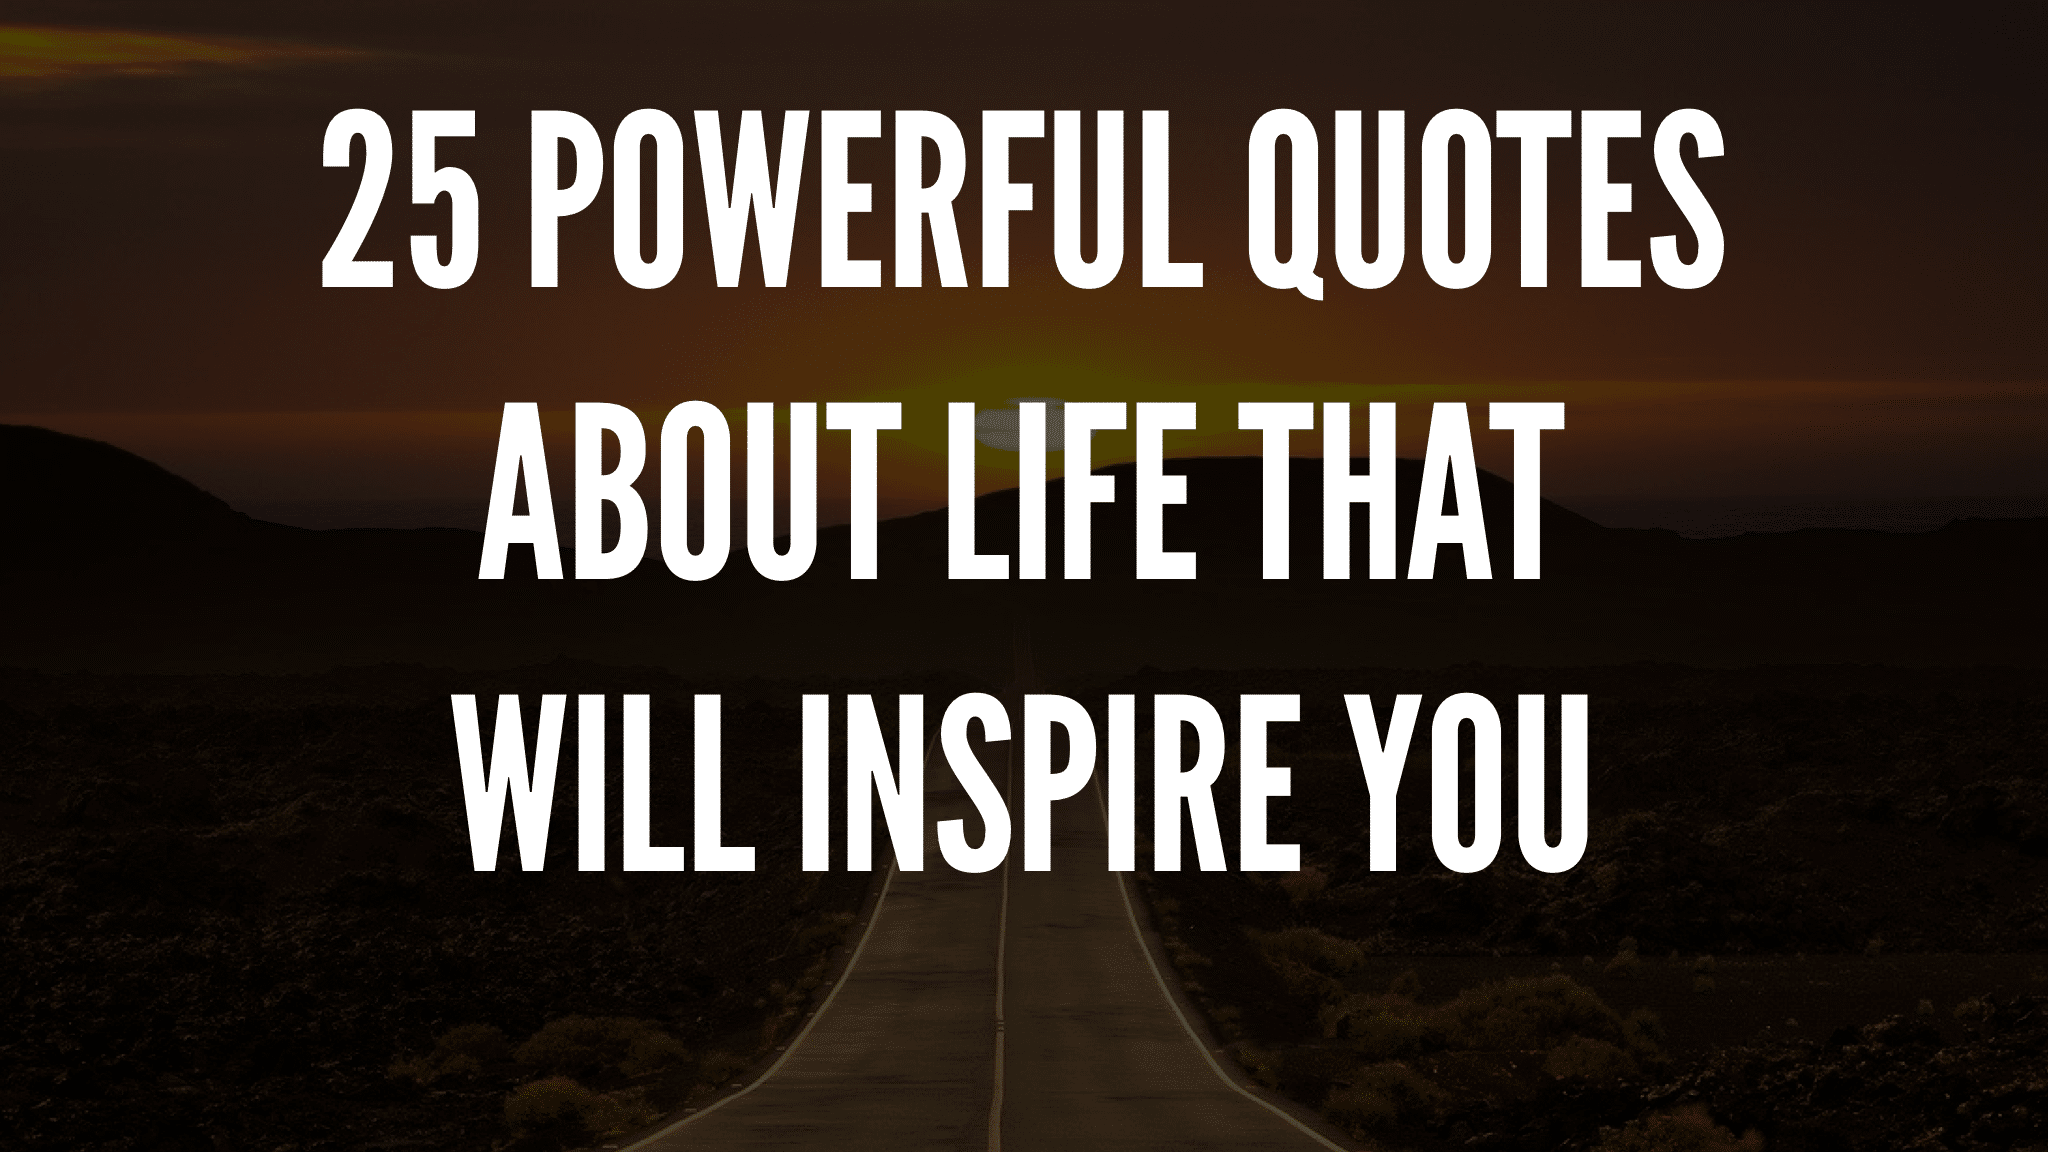 25 Powerful Quotes About Life That Will Inspire You